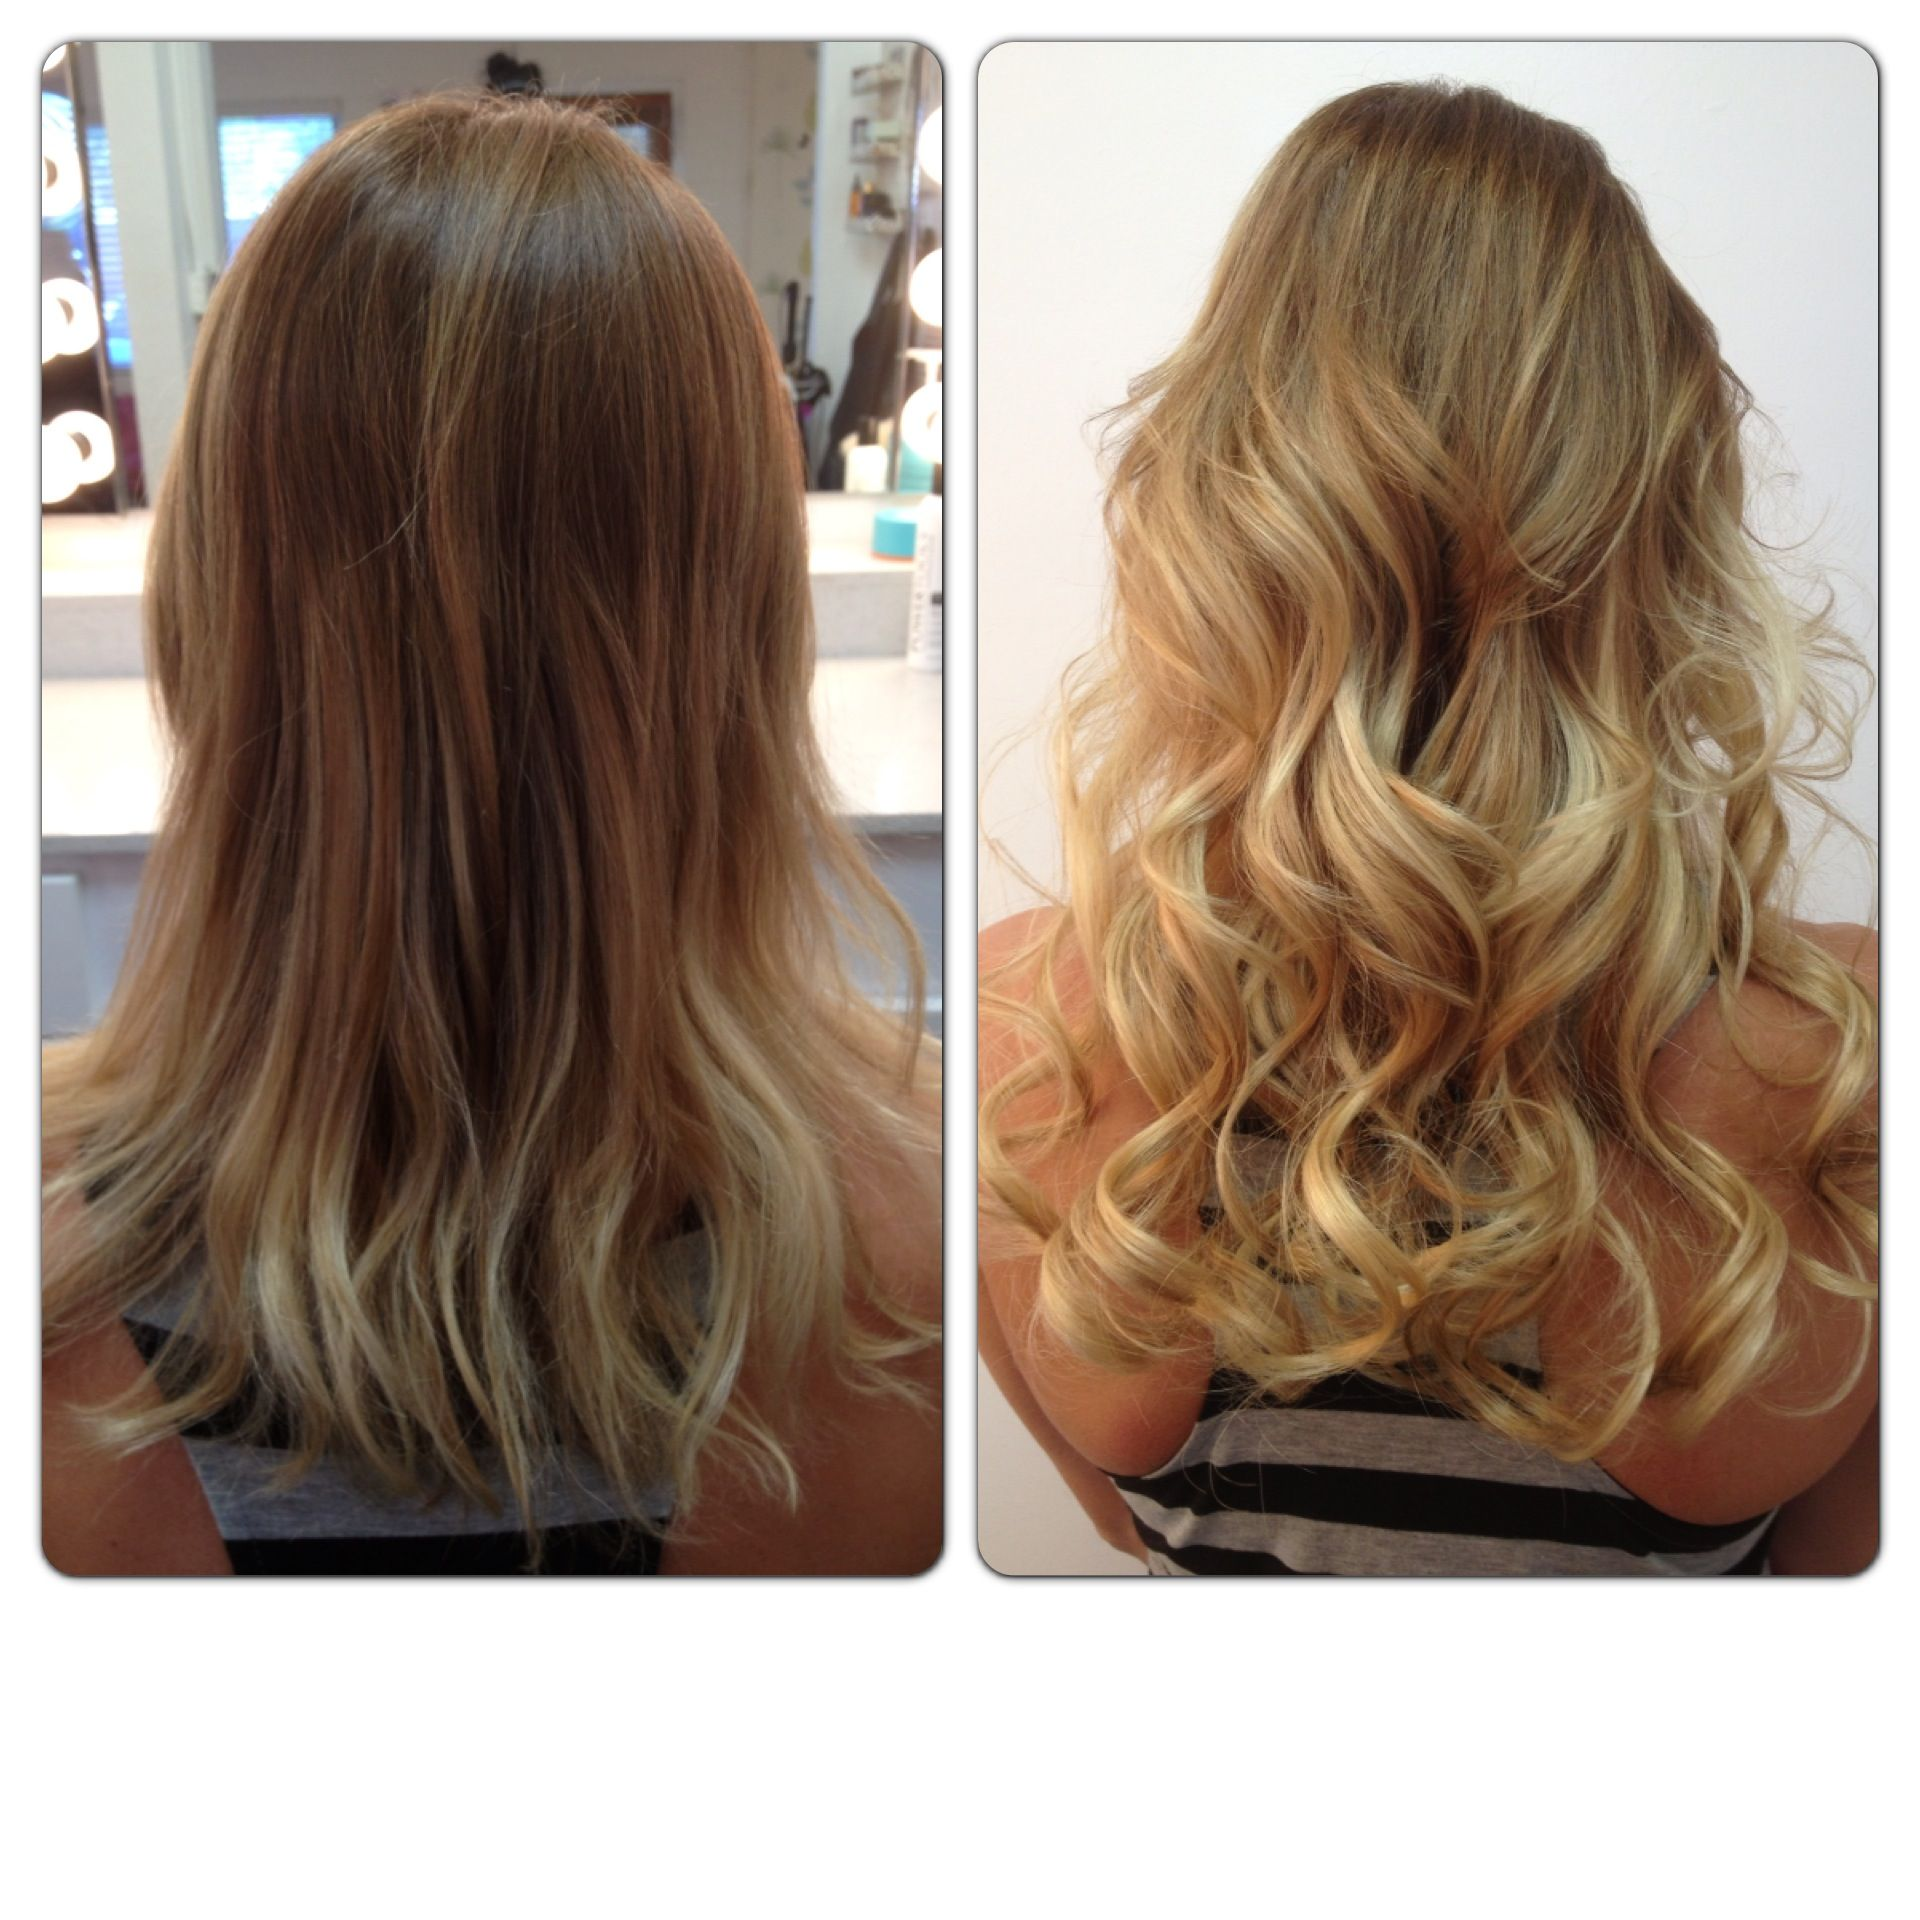 Before And After Hair Extensions Theuntouchableshairdesign